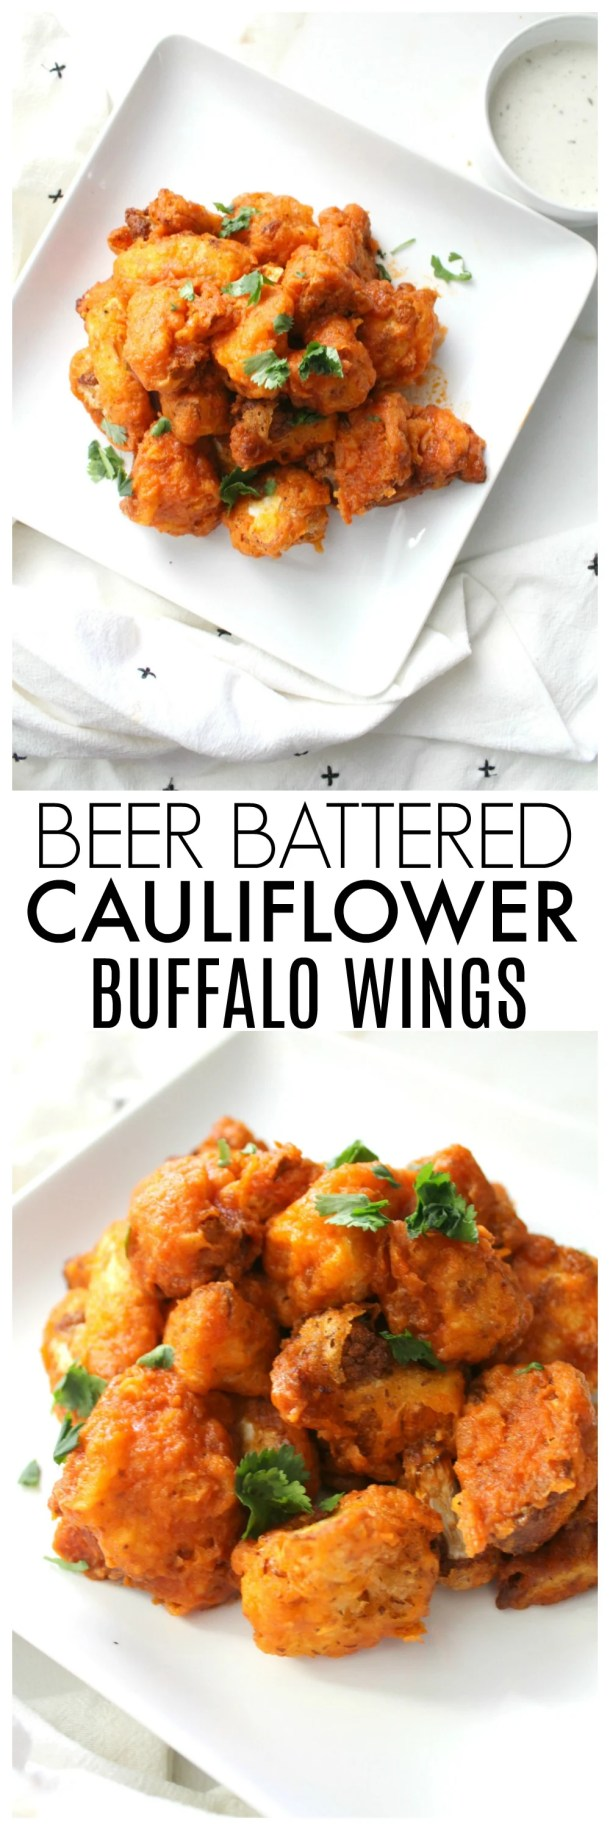 These Beer Battered Cauliflower Buffalo Wings are the perfect balance of spice and crunch. A vegan game day recipe that everyone will love! | ThisSavoryVegan.com #vegan #gameday